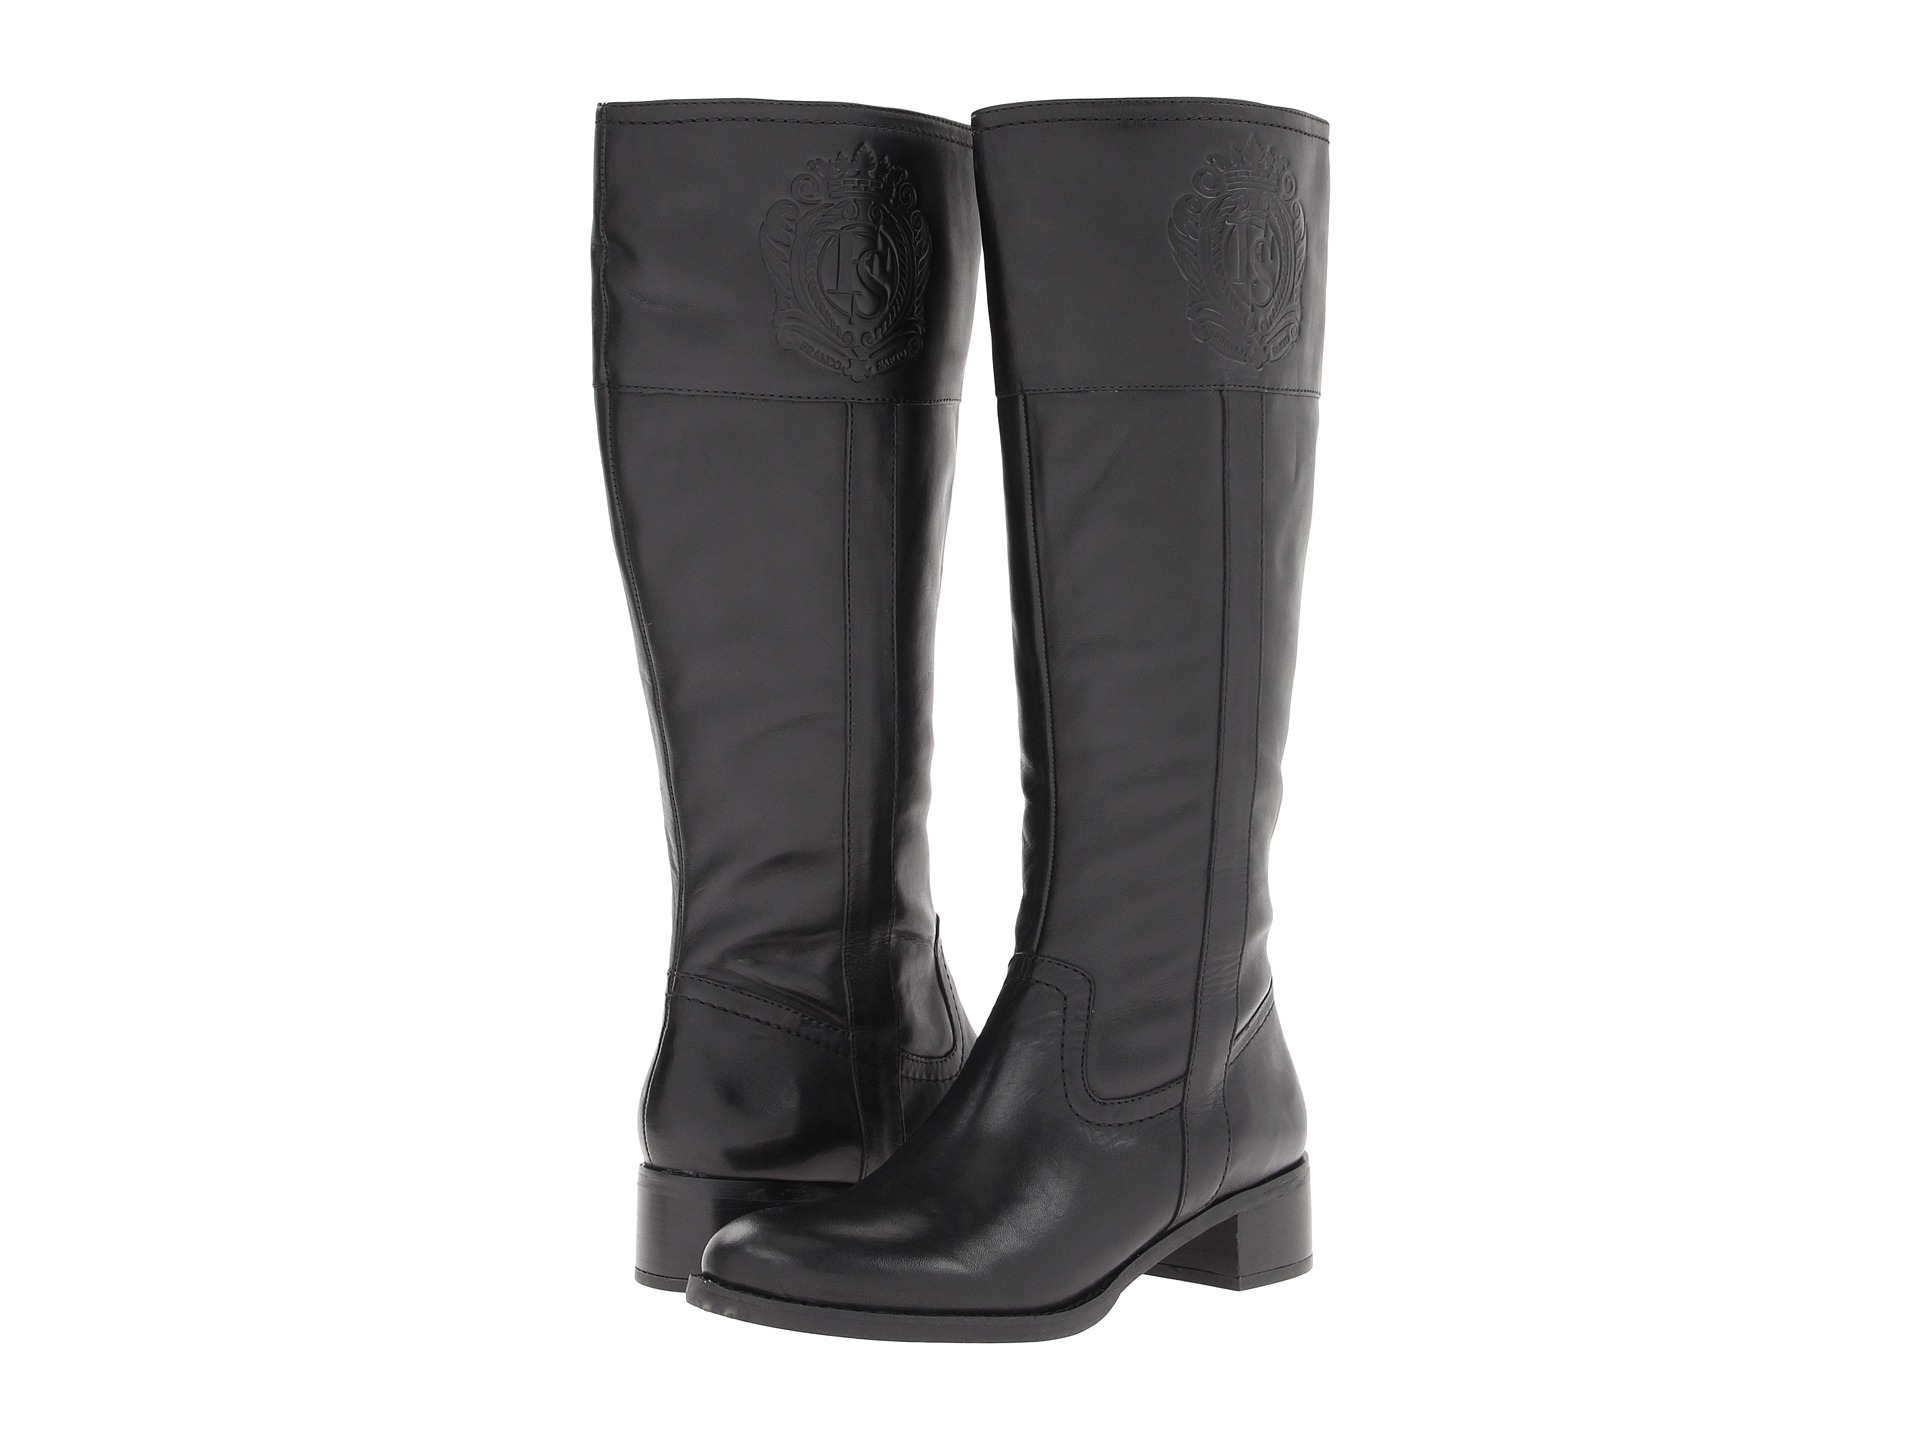 Womens Black Riding Boots PSPjuArz